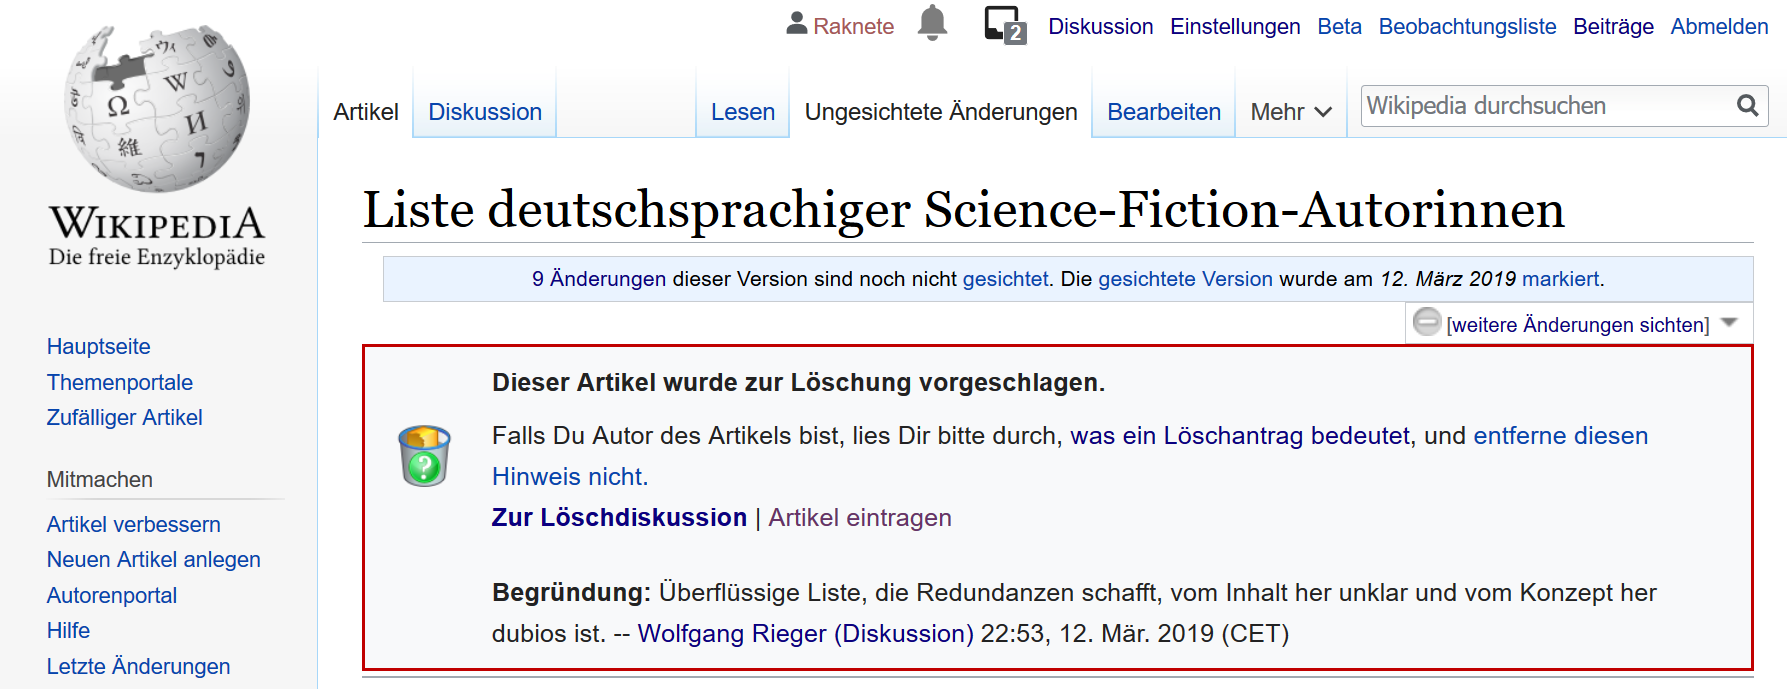 Liste deutschsprachiger Science-Fiction-Autorinnen